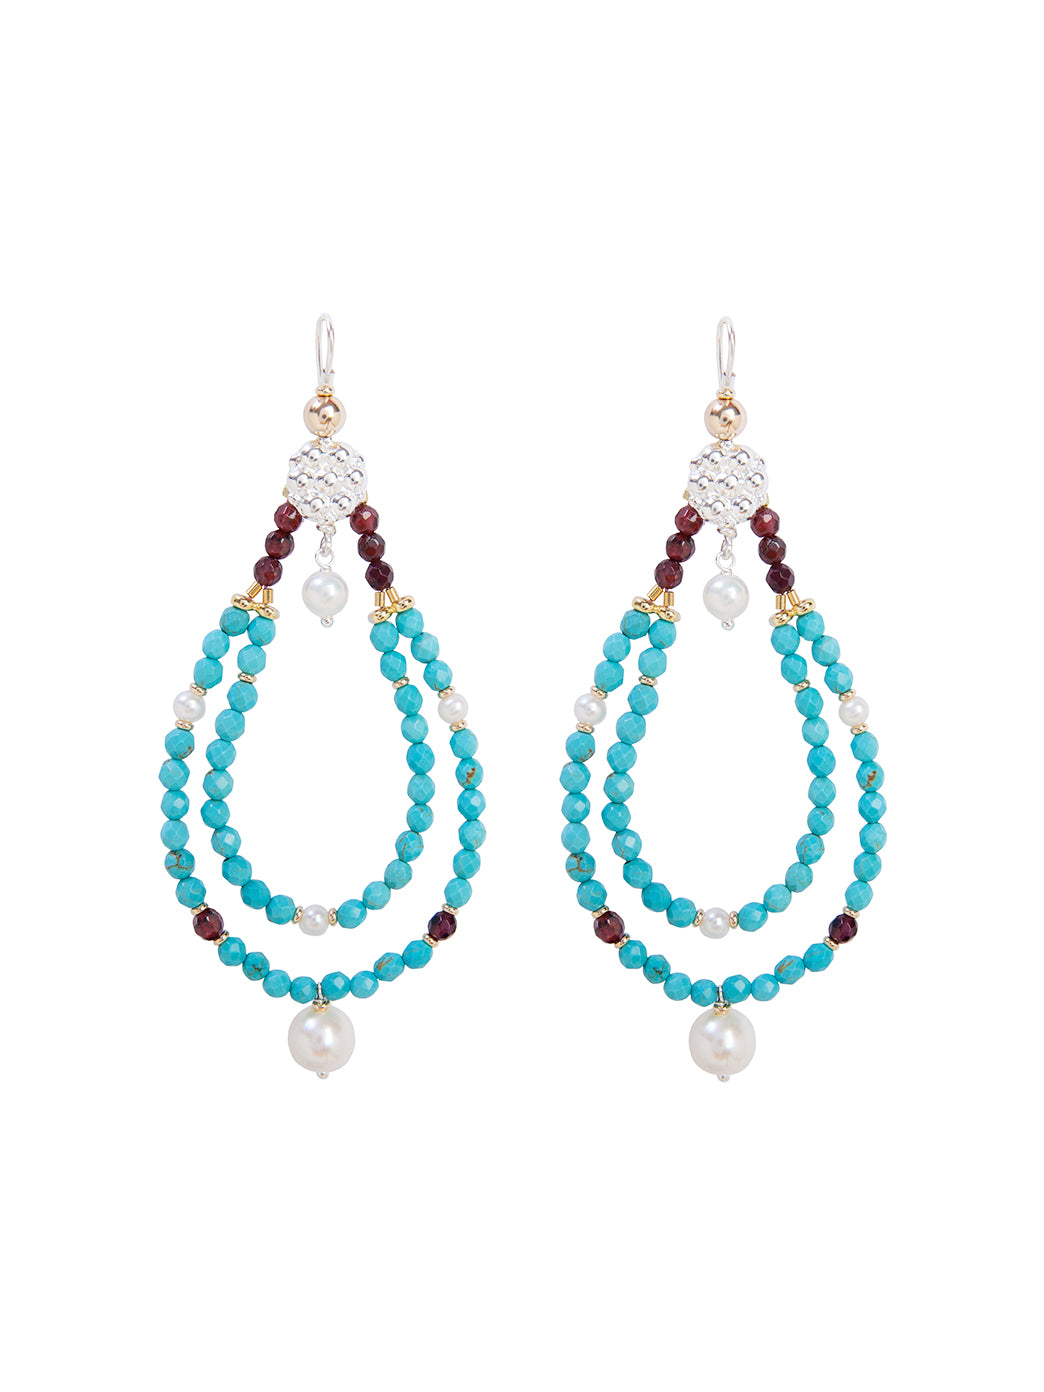 Fiorina Jewellery Rahini Earrings Turquoise